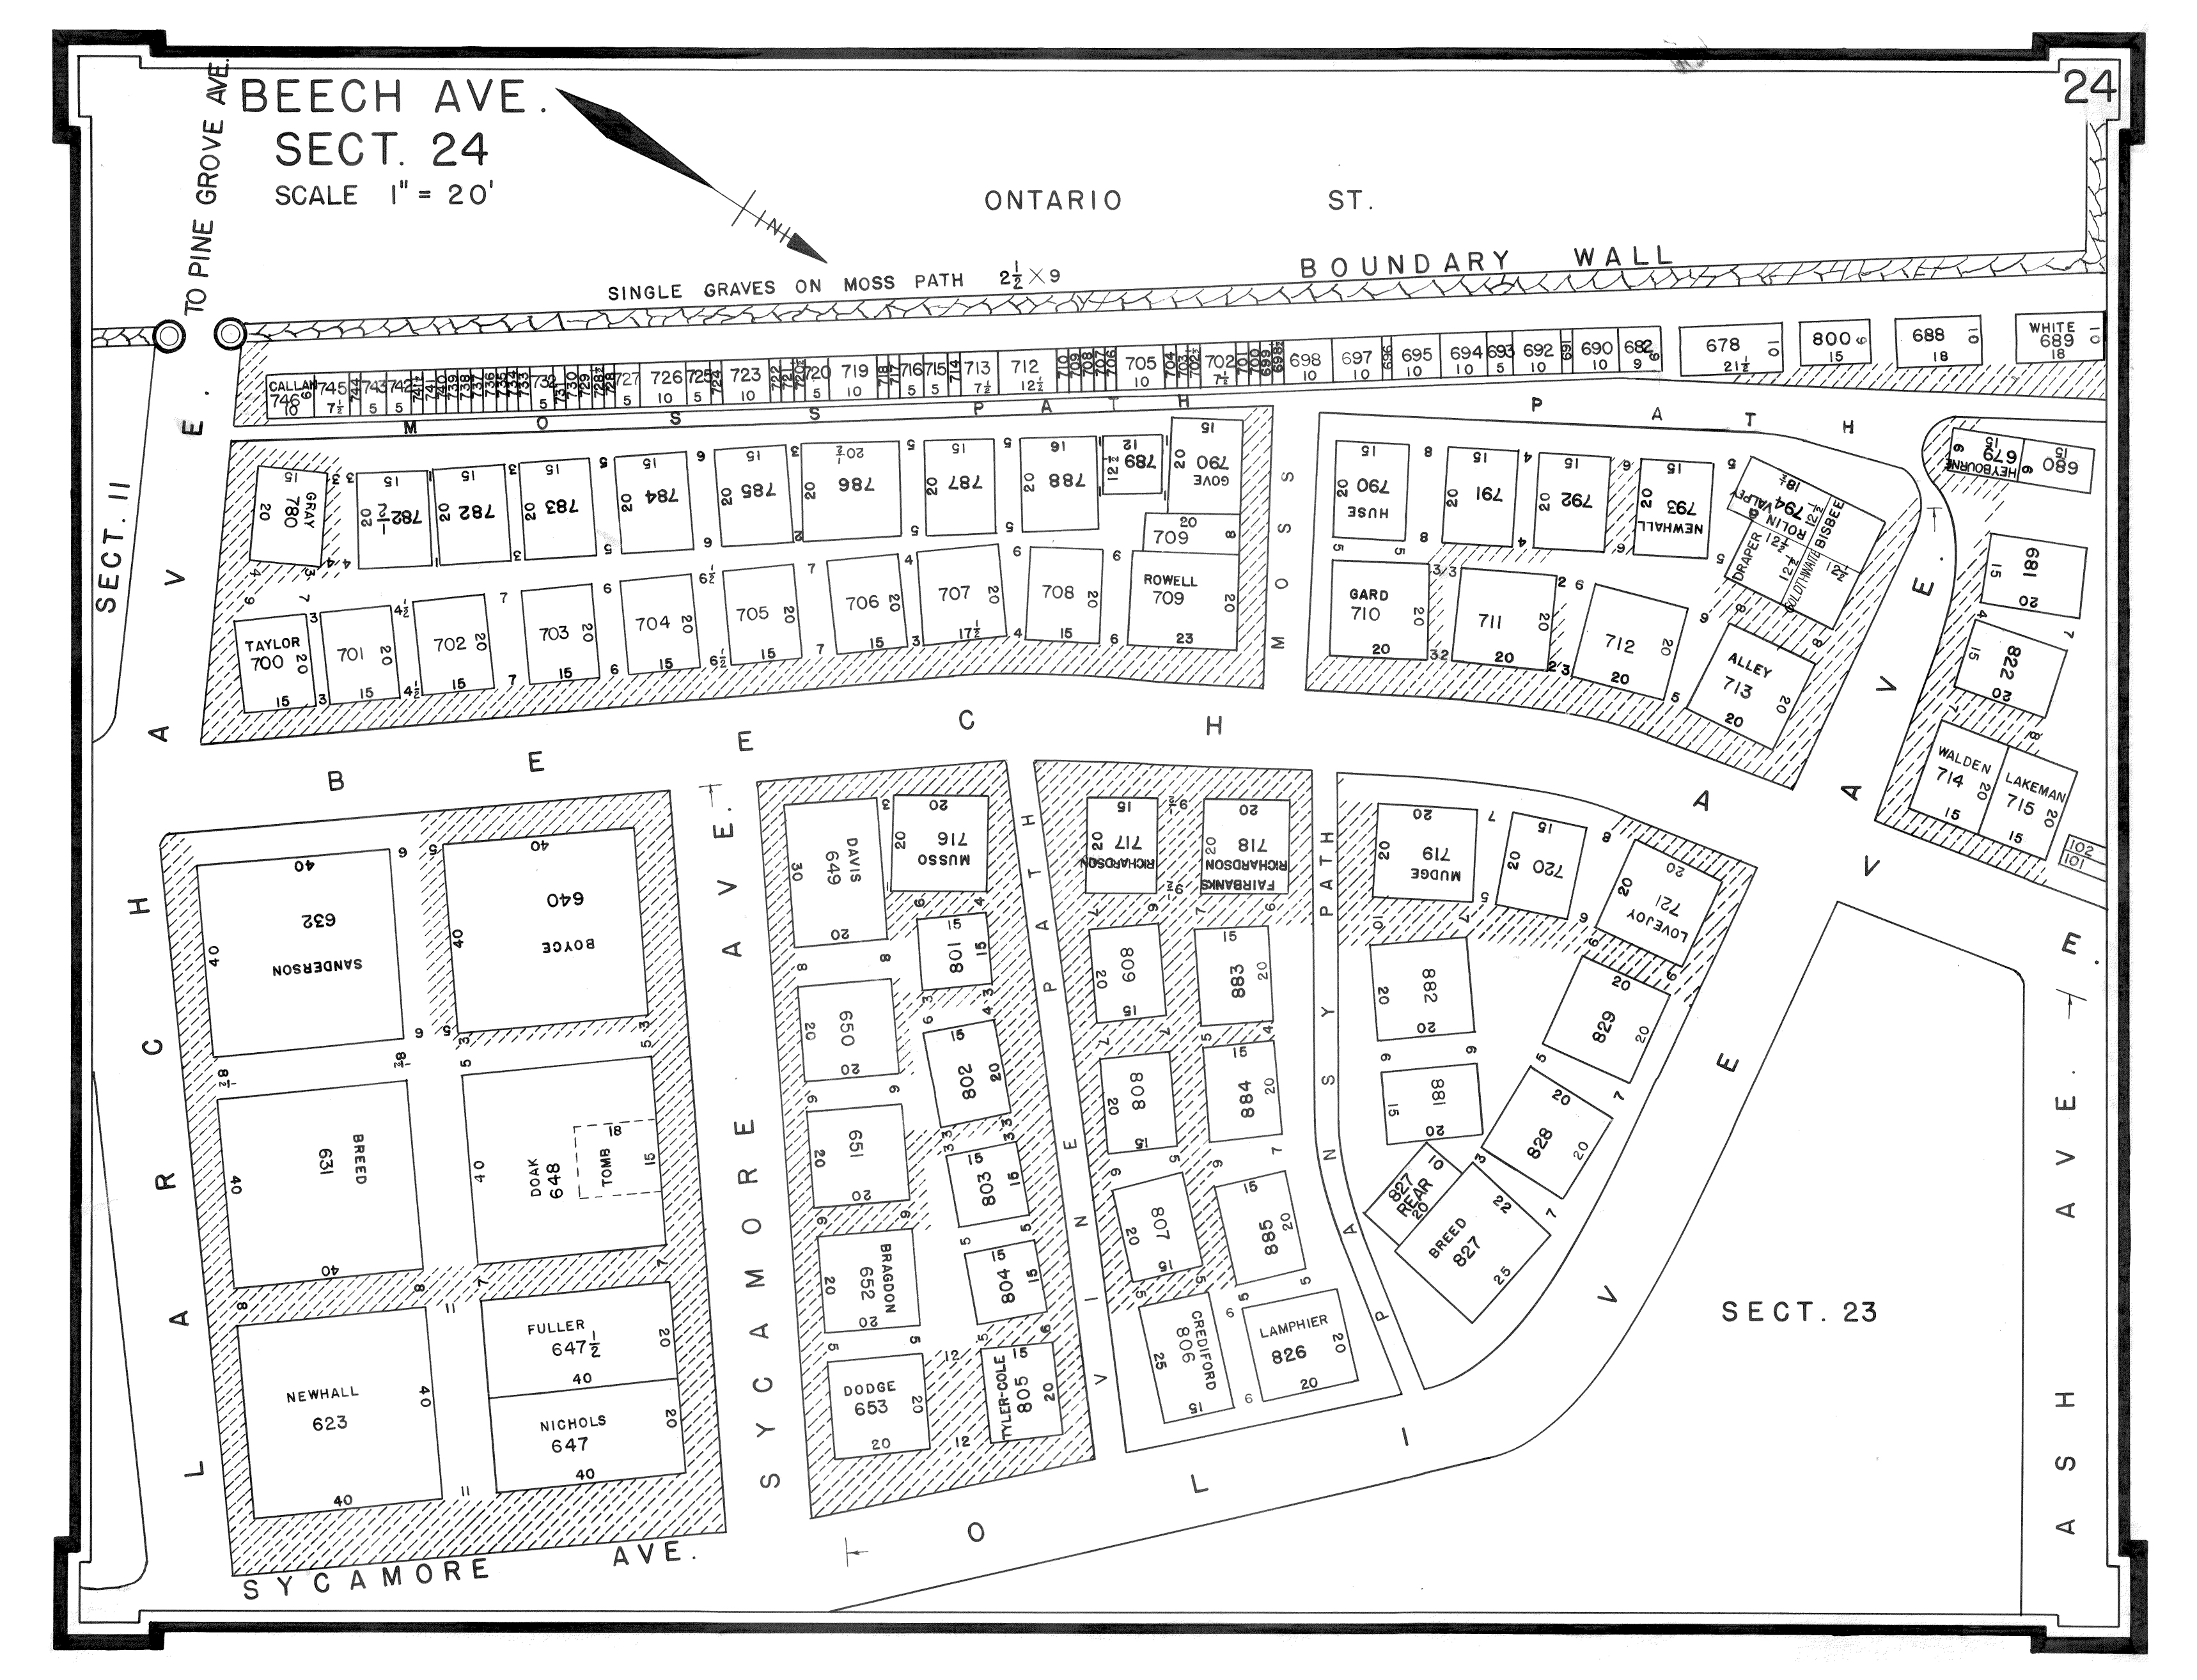 Pine Grove Cemetery - Conservation cemetery map us